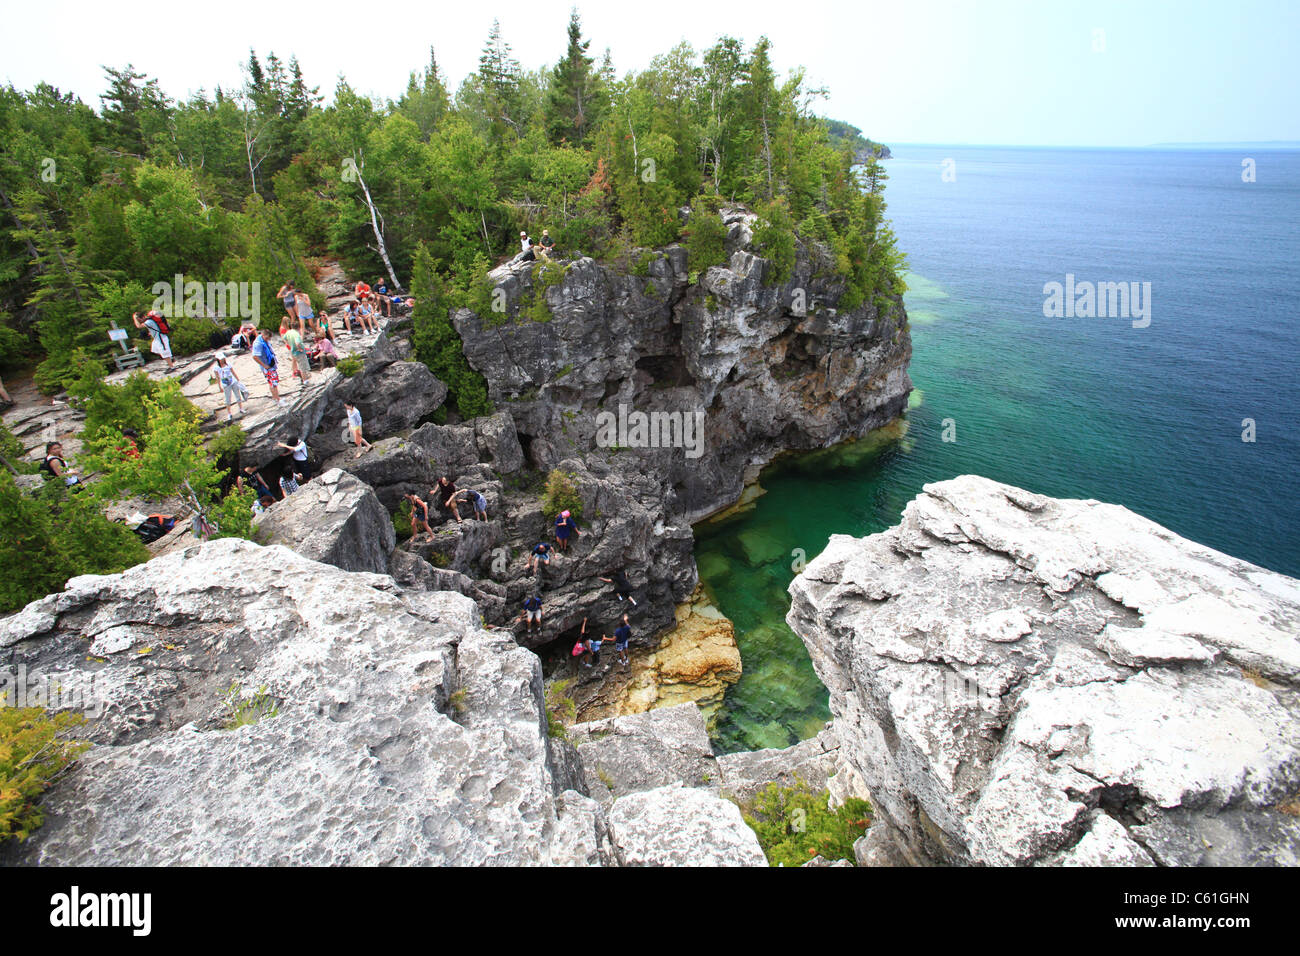 Rock formation and shoreline in Tobermory, Georgian bay, Ontario, Canada - Stock Image